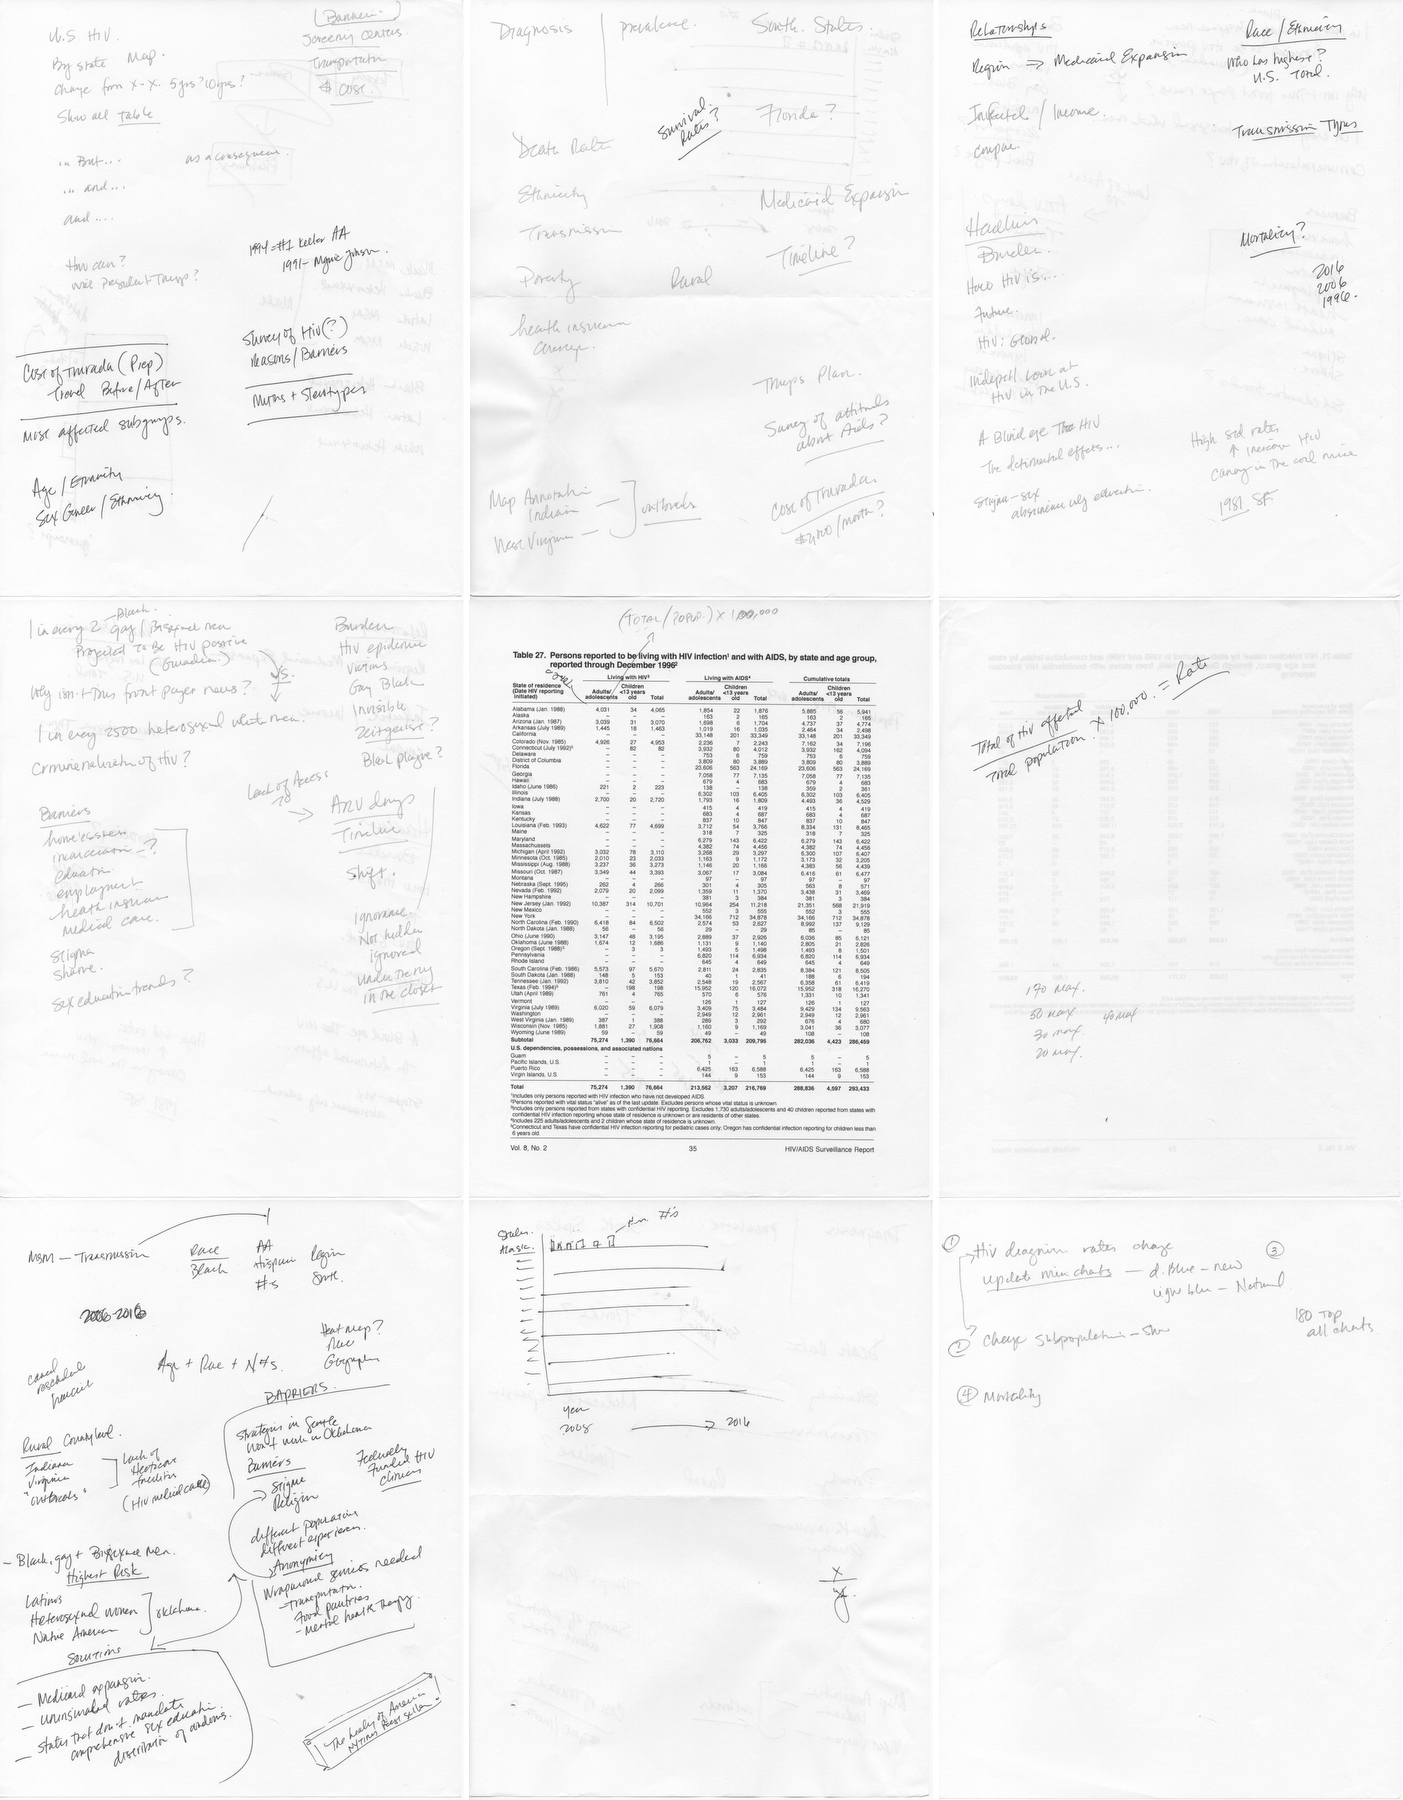 design sketches and thinking process